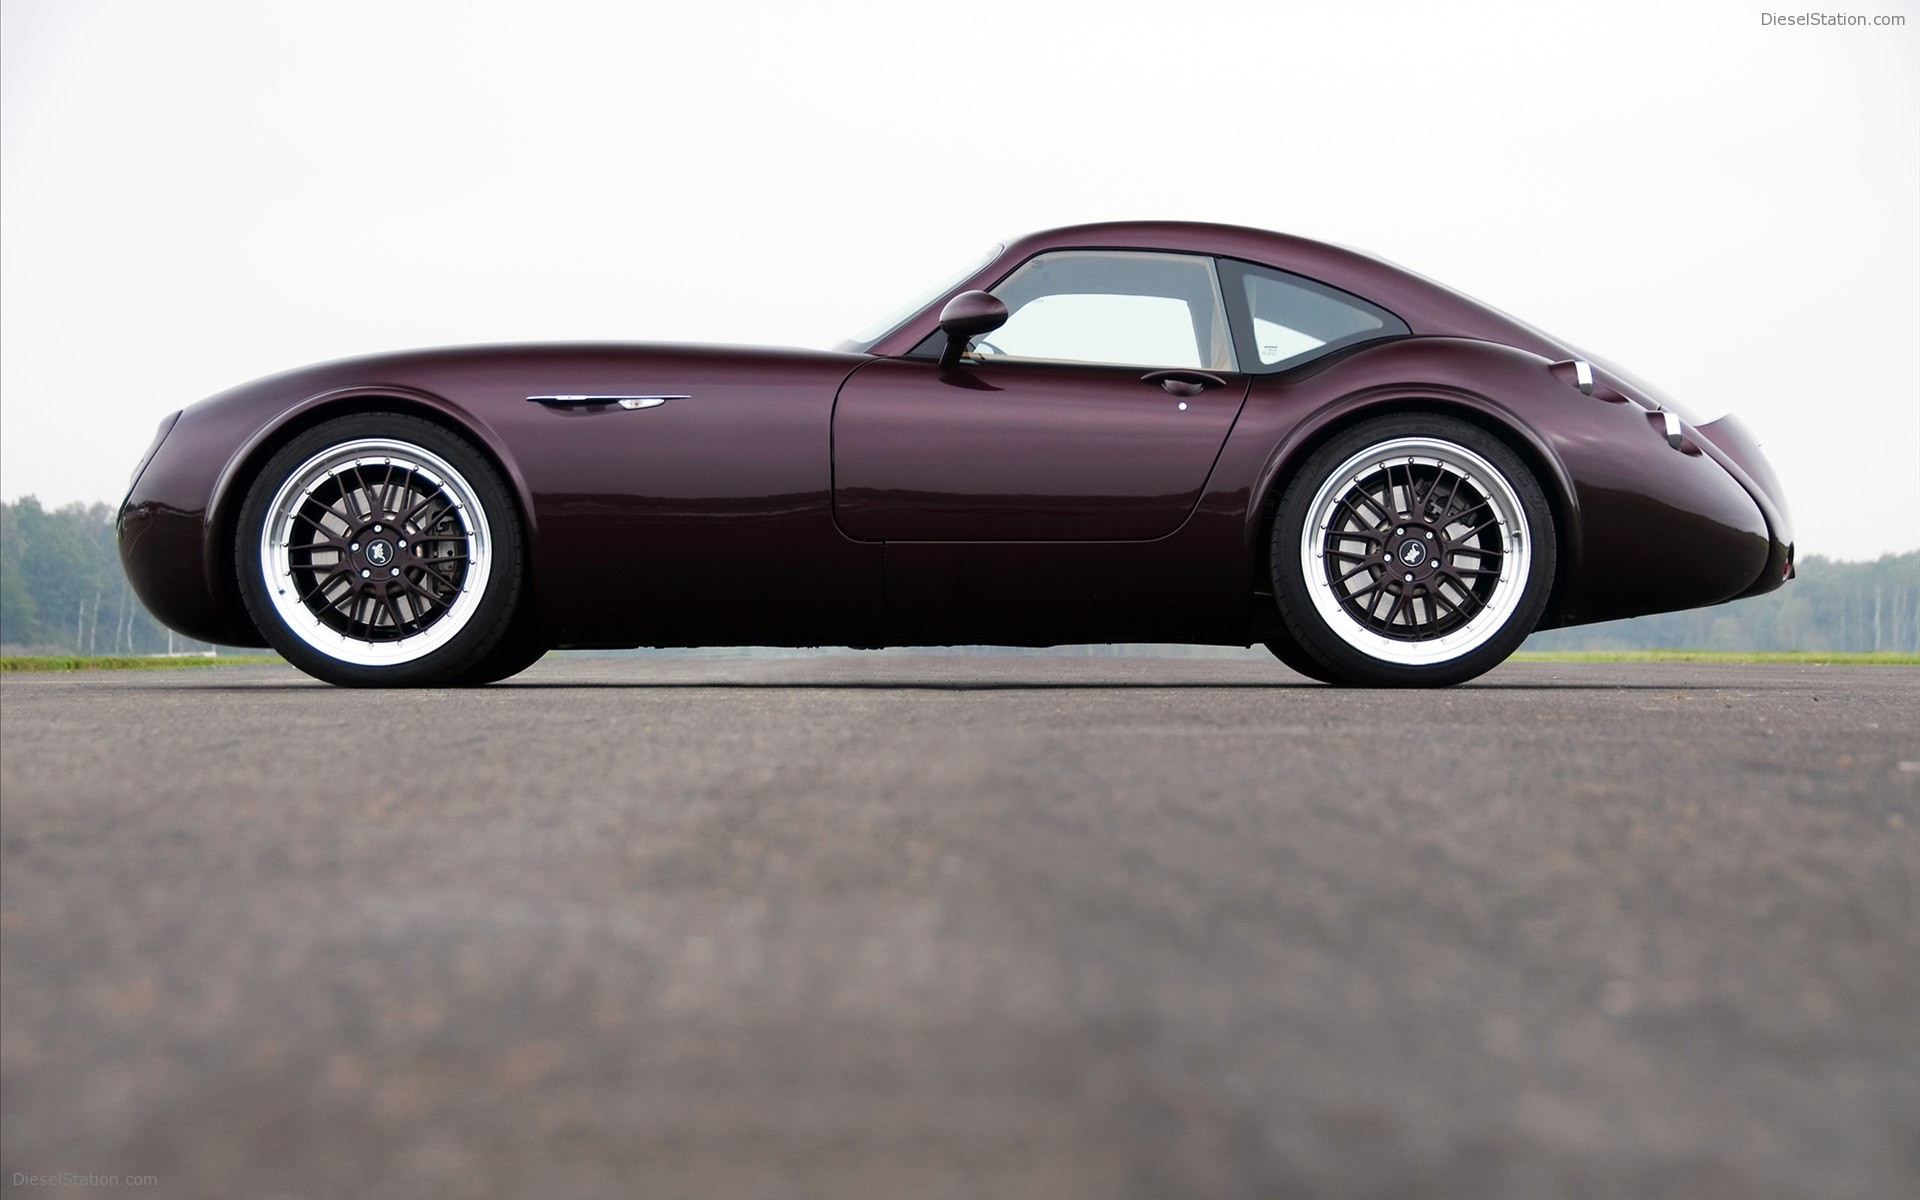 1920x1200 - Wiesmann GT MF4 Wallpapers 24